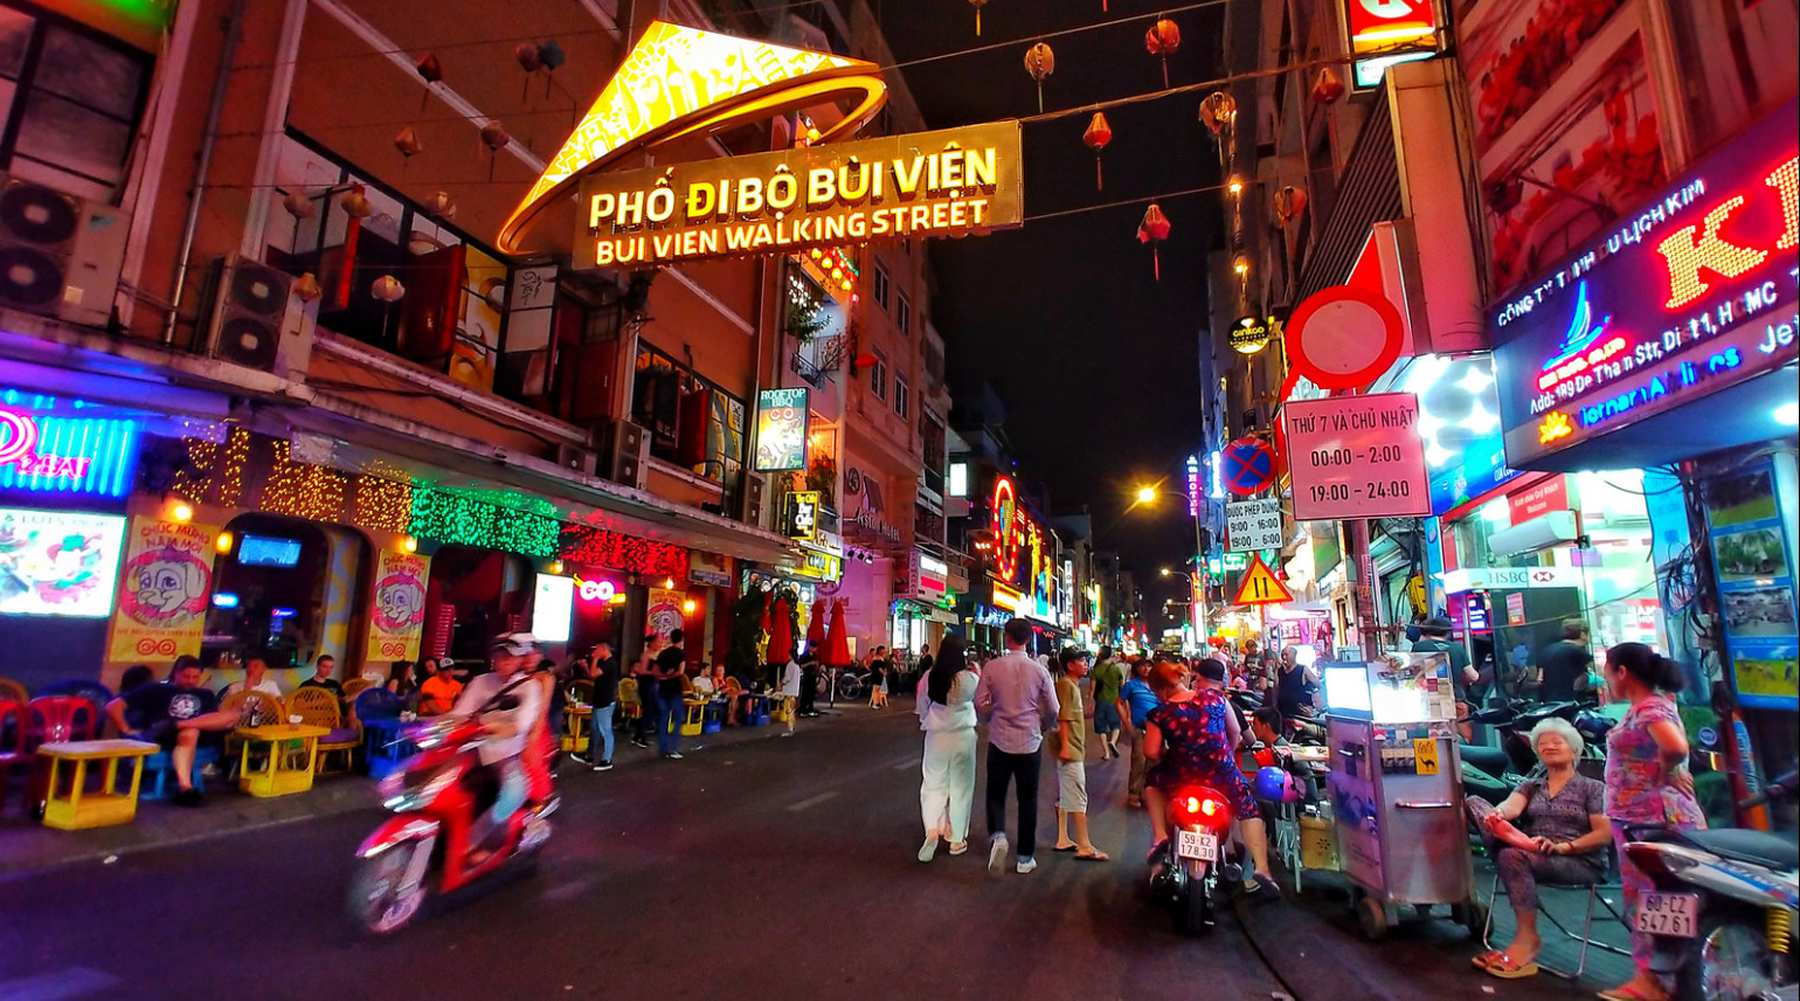 Bui Vien street – De backpackerstraat van Ho Chi Minh City